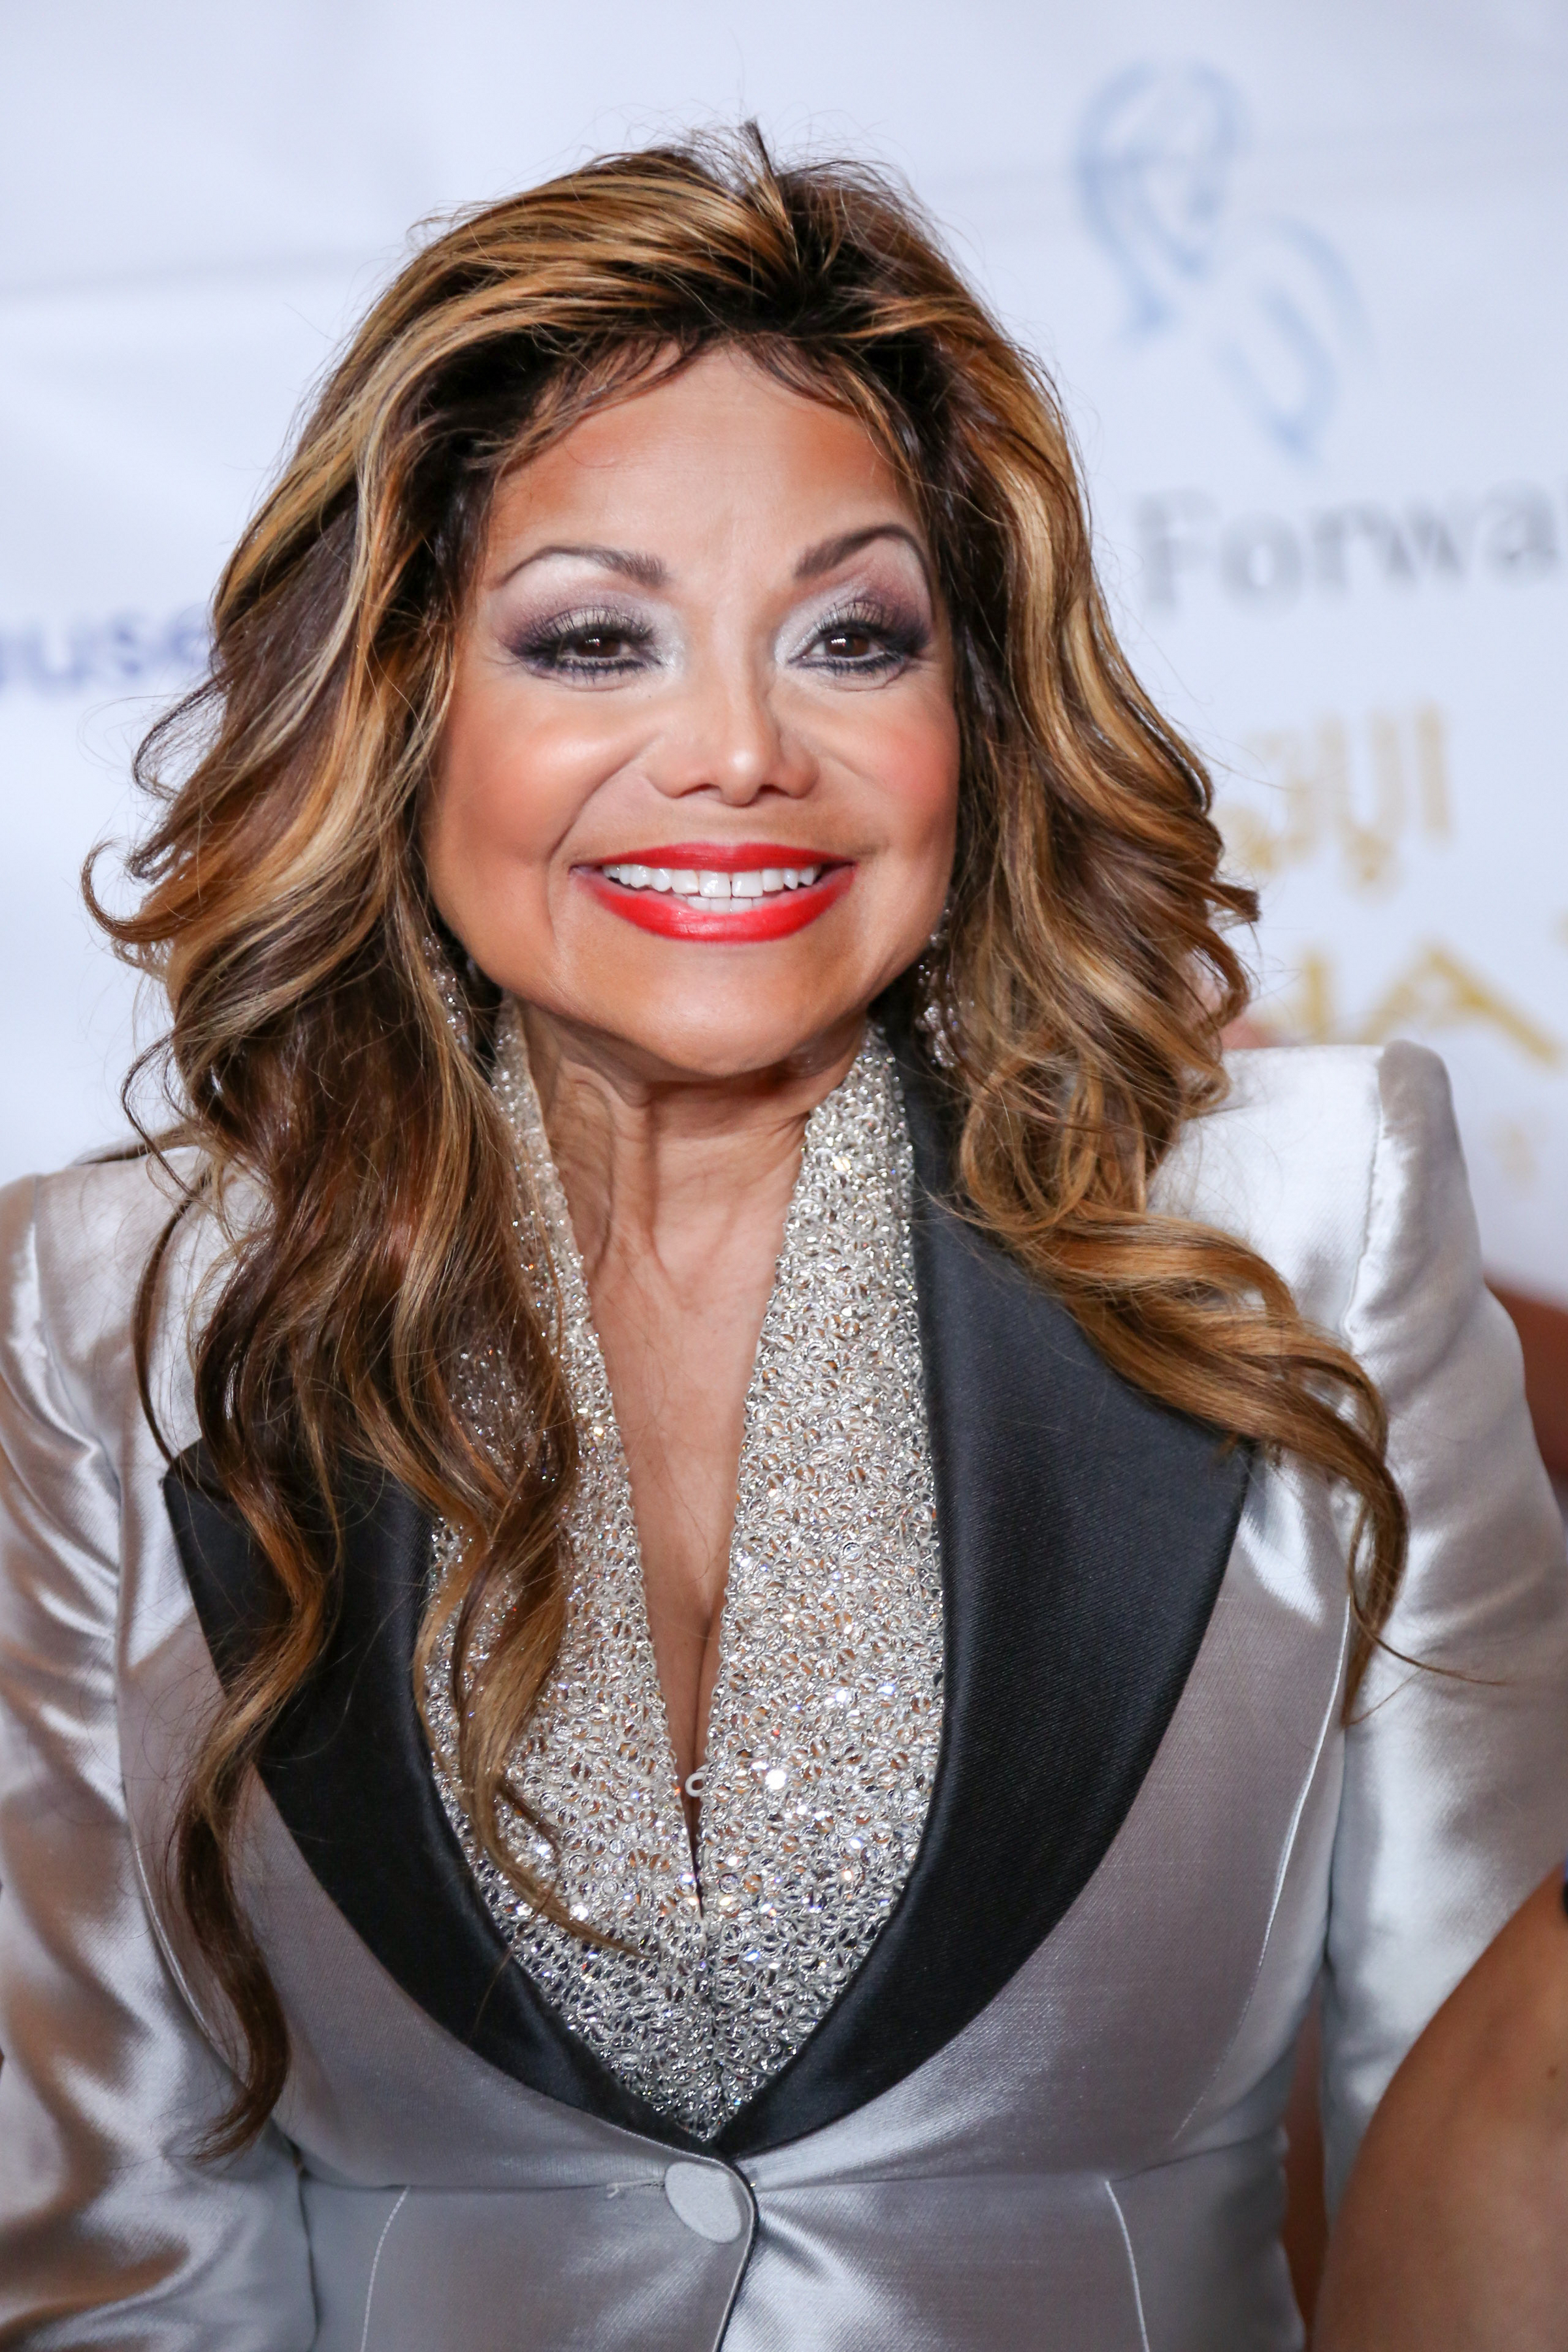 La Toya Jackson Ordered To Pay $360,000 For Years Of Unpaid Rent